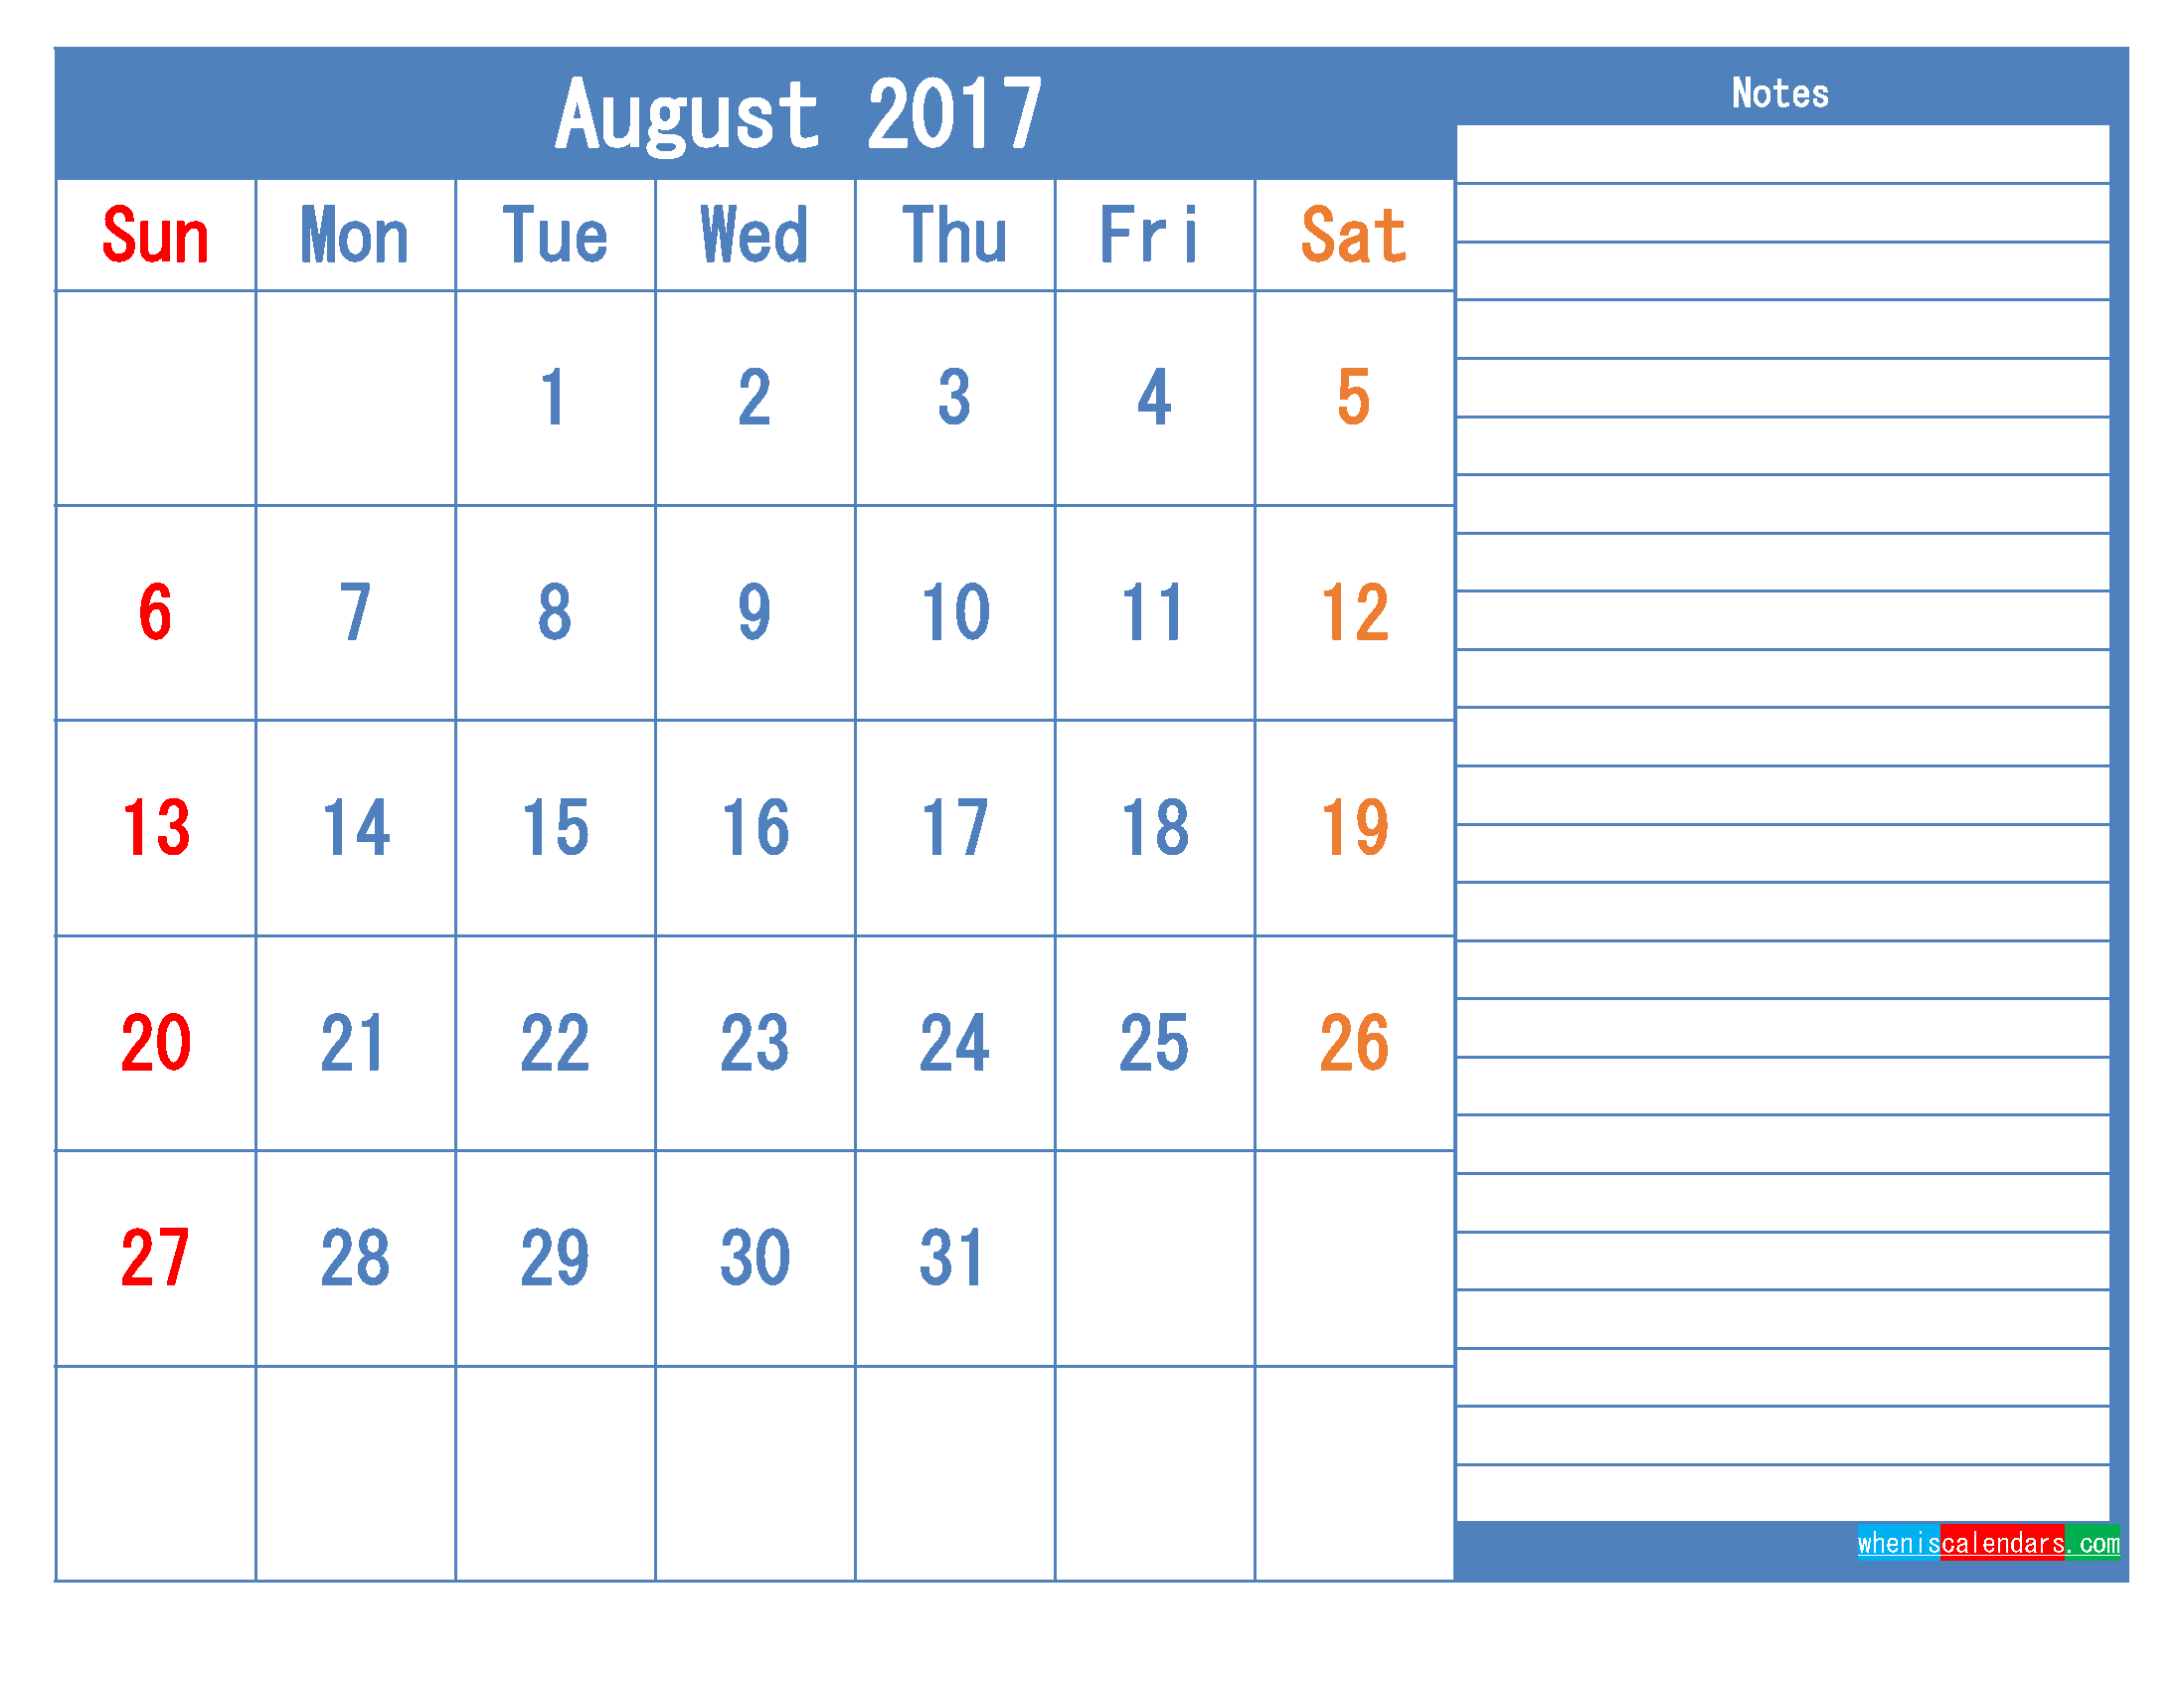 Printable Calendar 2017 August Monthly Calendar Template as PDF